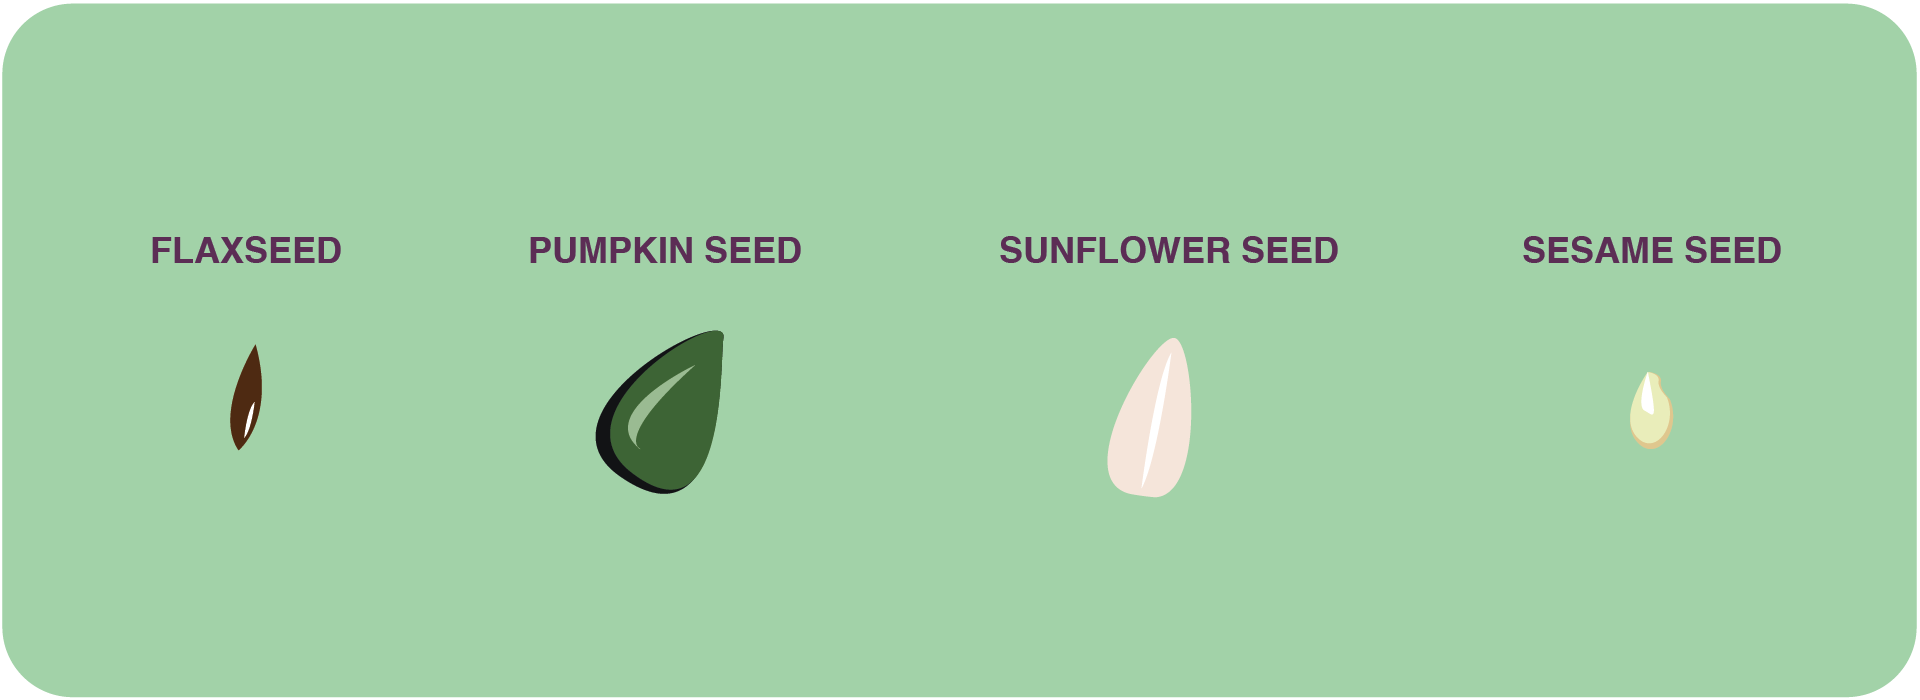 seed-cycle-blend-ready-to-use-seed-cycling-seeds-nutrition-how-it-works